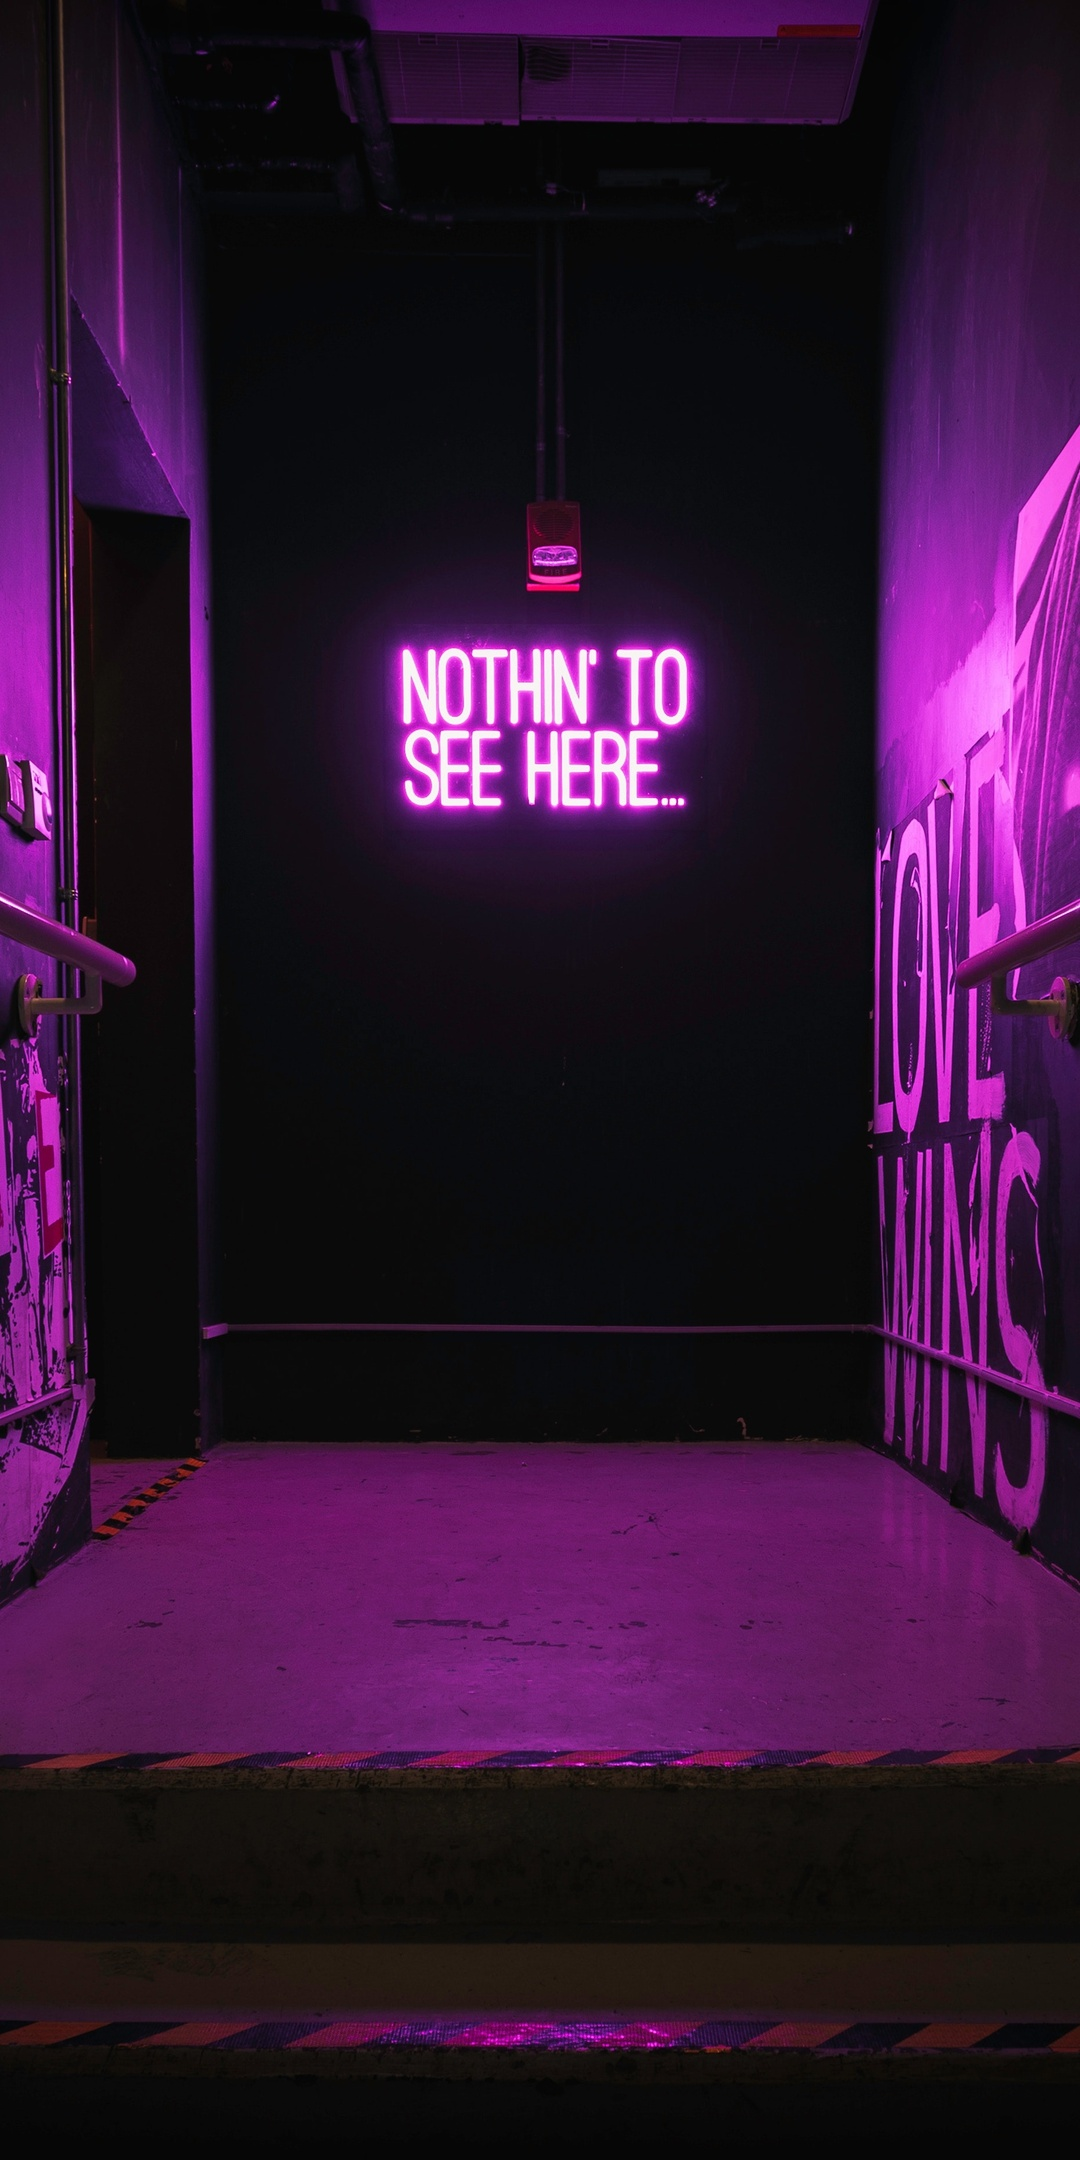 1080x2160 Neon Dark Place 5k One Plus 5t Honor 7x Honor View 10 Lg Q6 Hd 4k Wallpapers Images Backgrounds Photos And Pictures